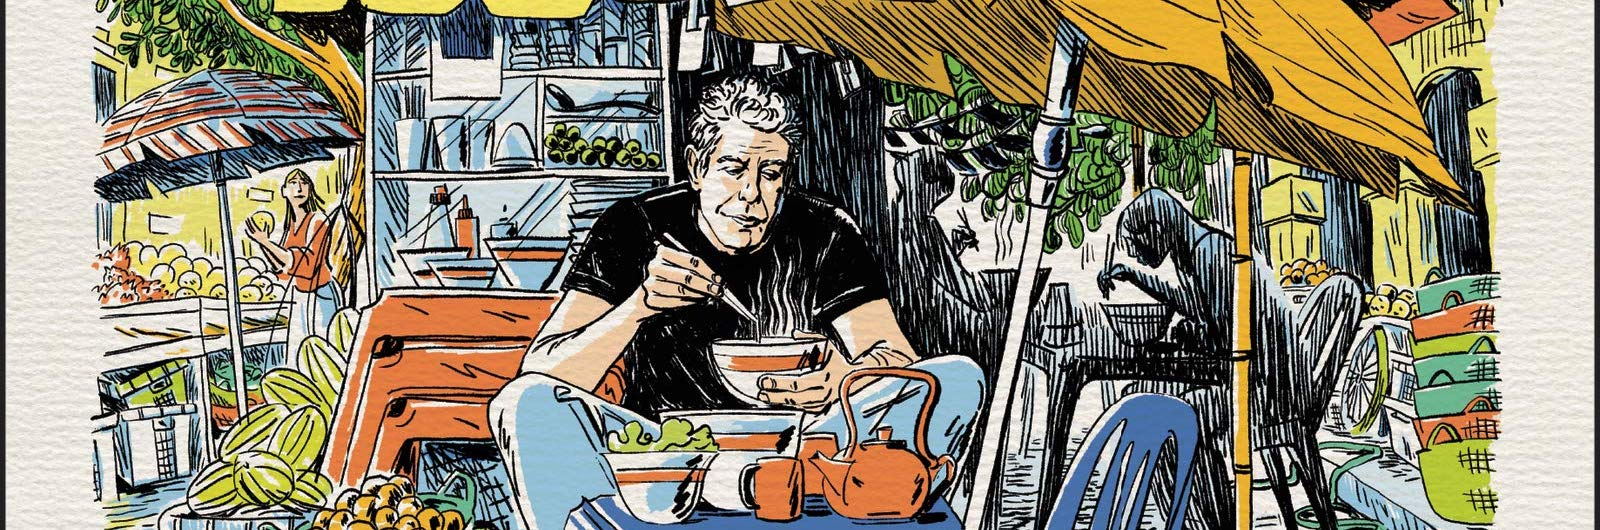 Anthony Bourdain's Final Book Arrives This Spring